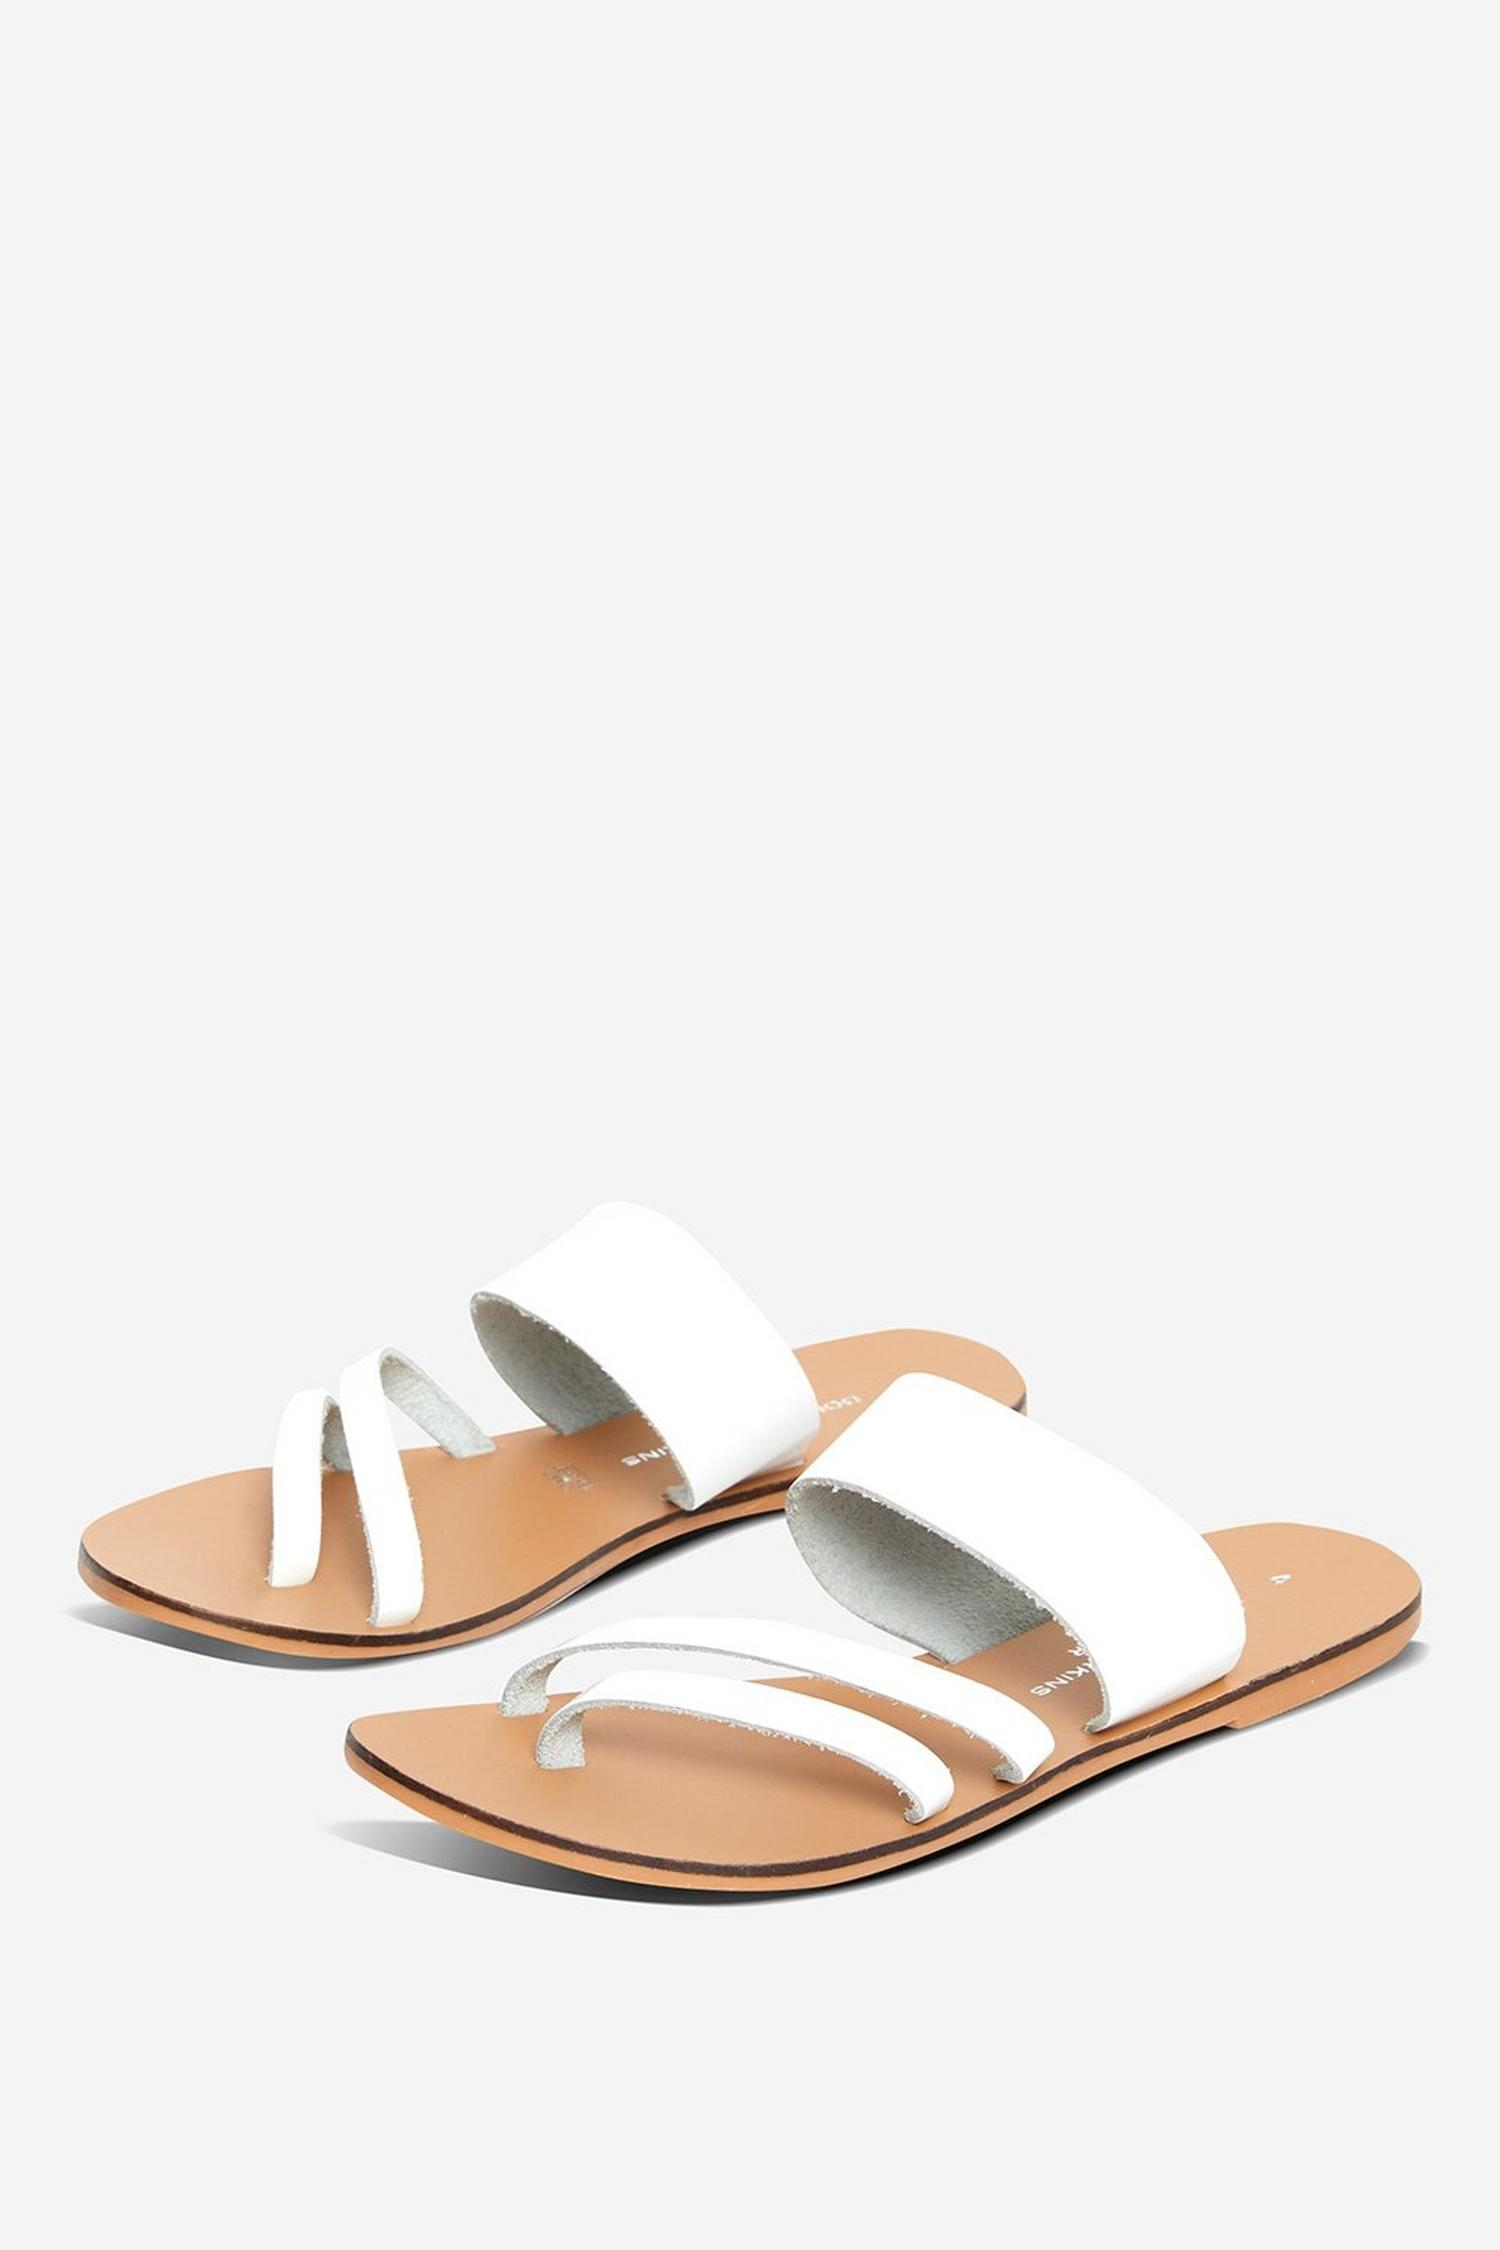 173 Leather White Joss Aysmmertical Sandals  image number 1